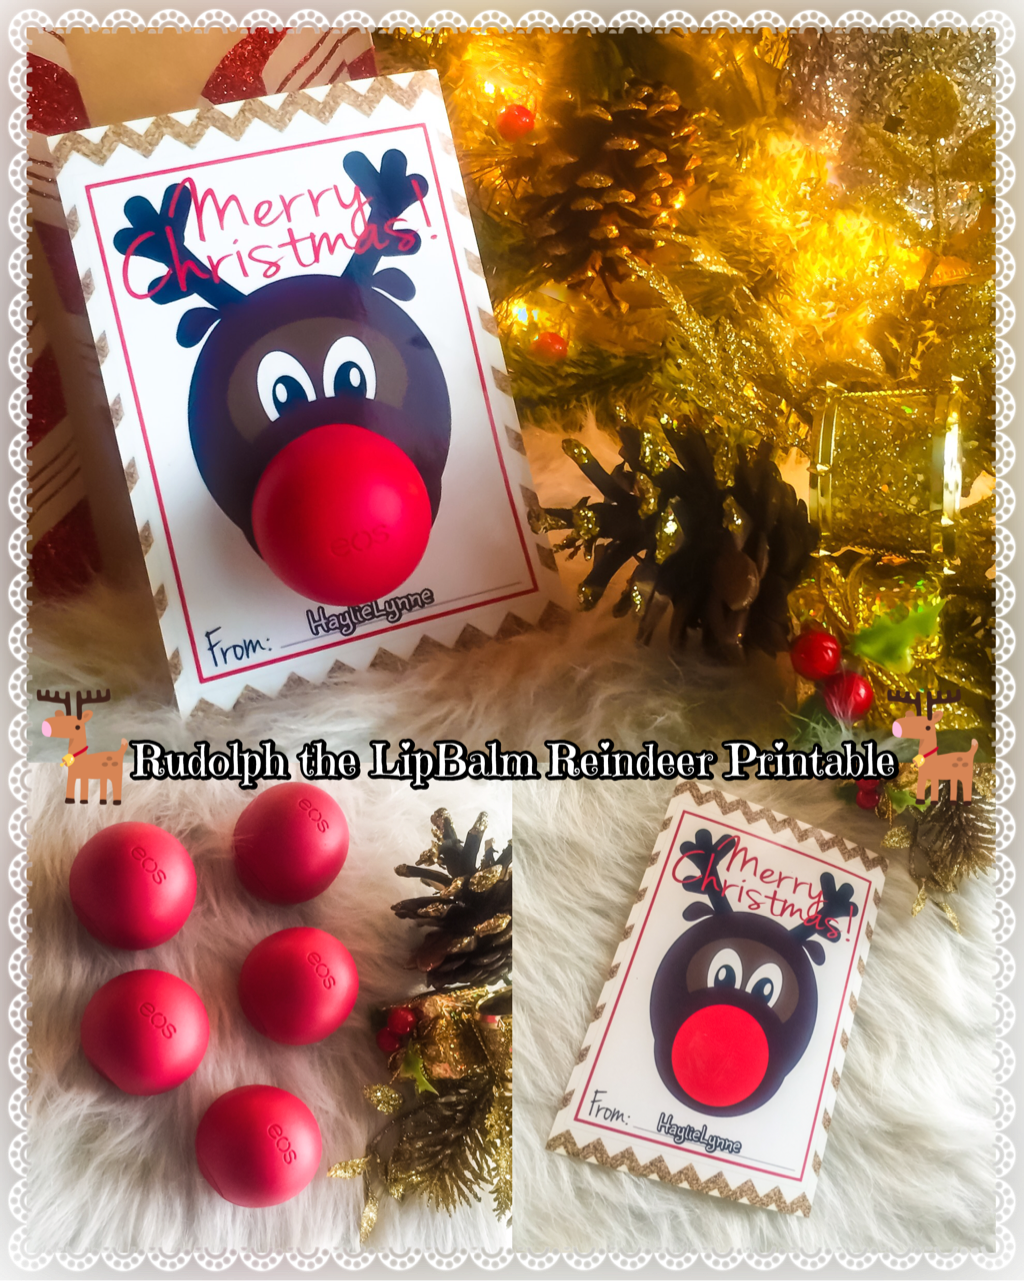 Rudolph The Lipbalm Reindeer Printable